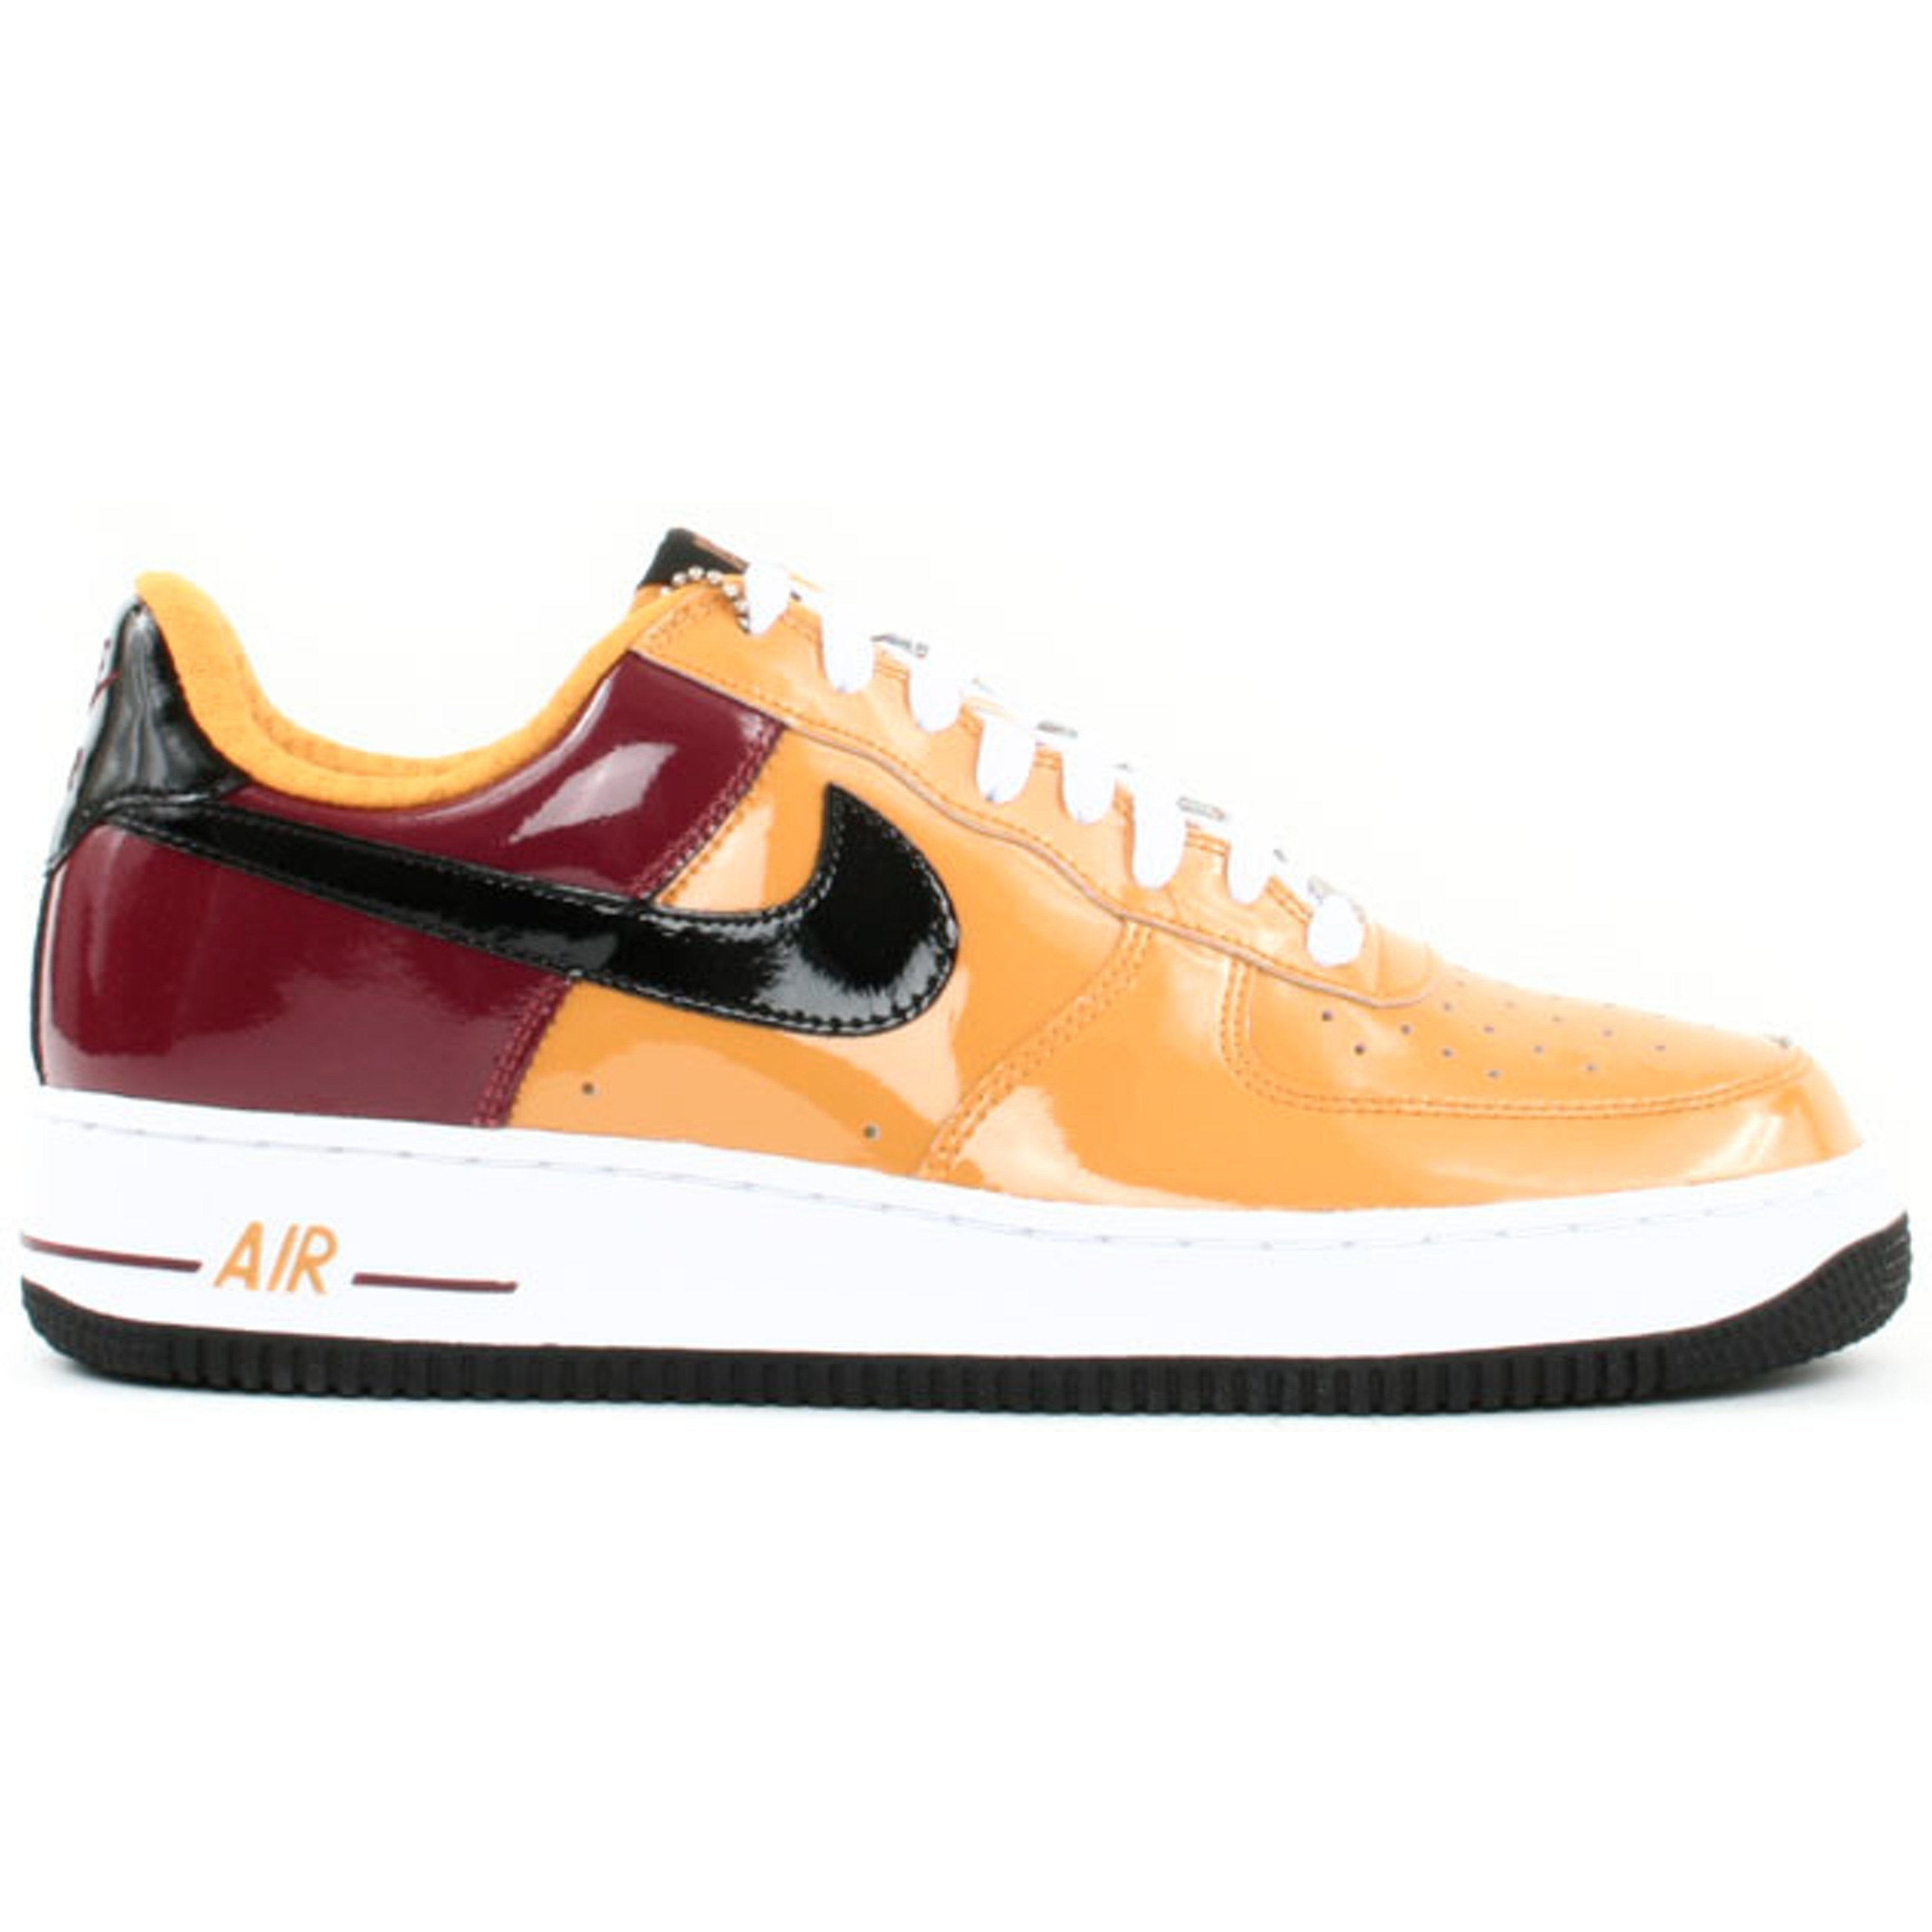 Nike Air Force 1 Low World Cup Portugal (309096-701)